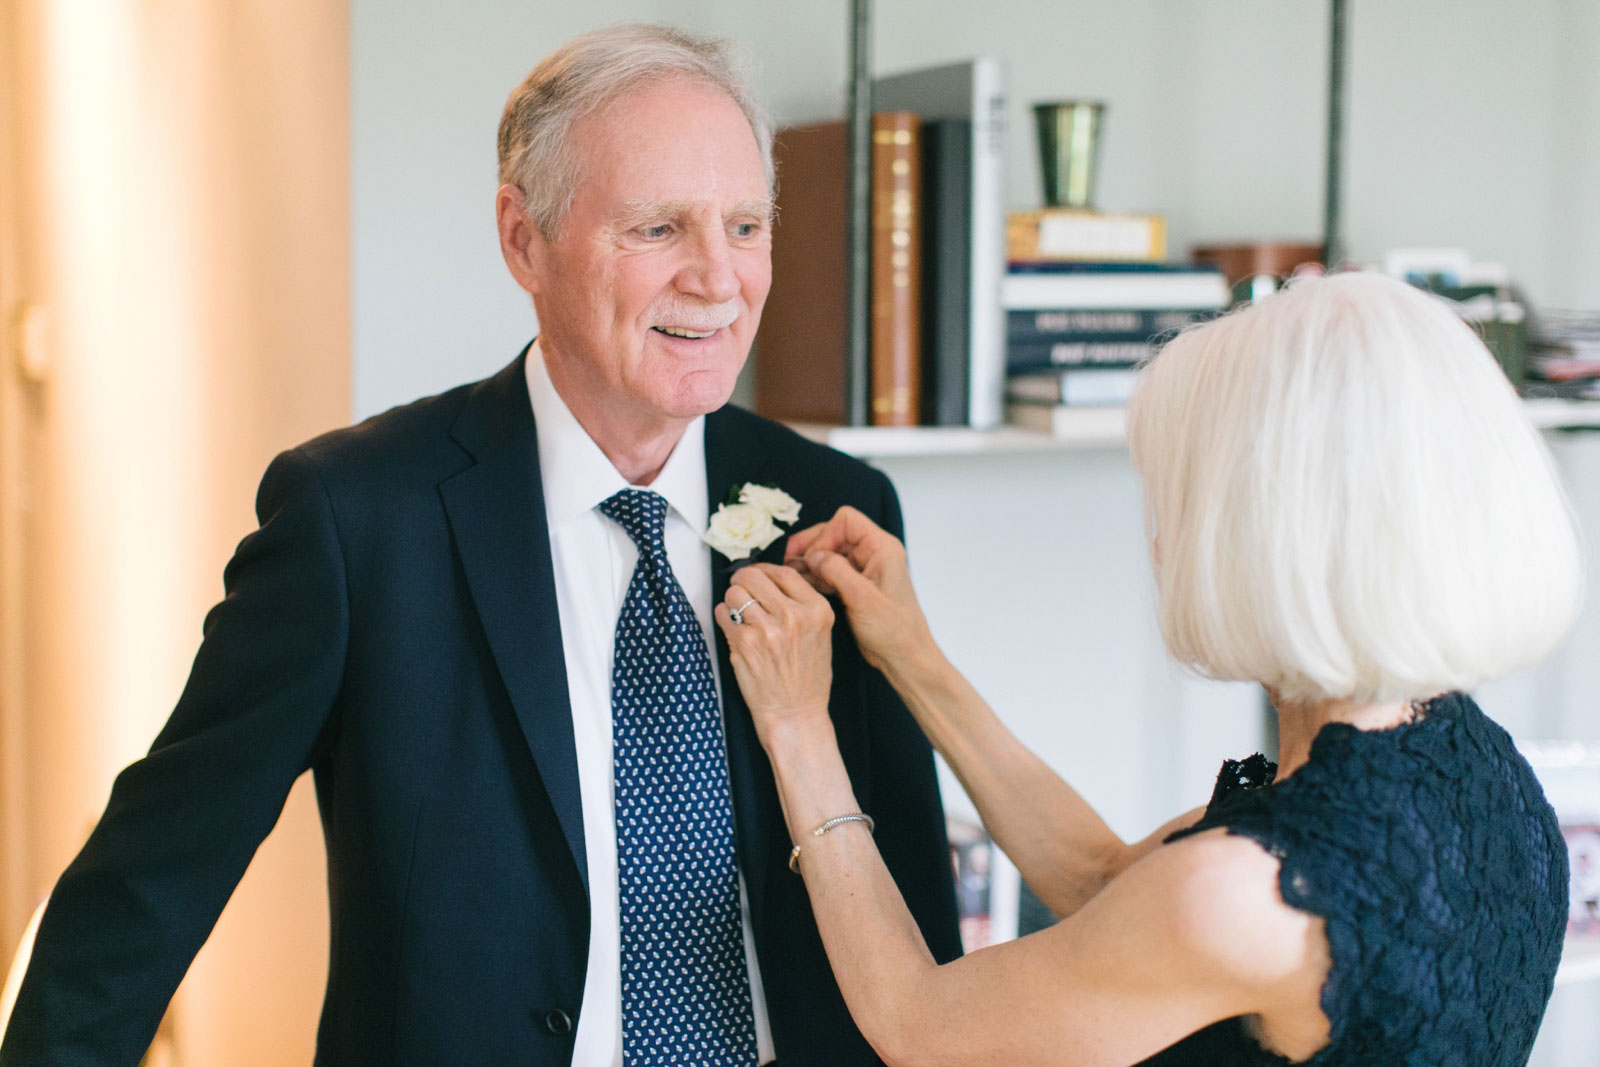 mother of the bride helps father of the bride with his white rose boutonniere while getting ready